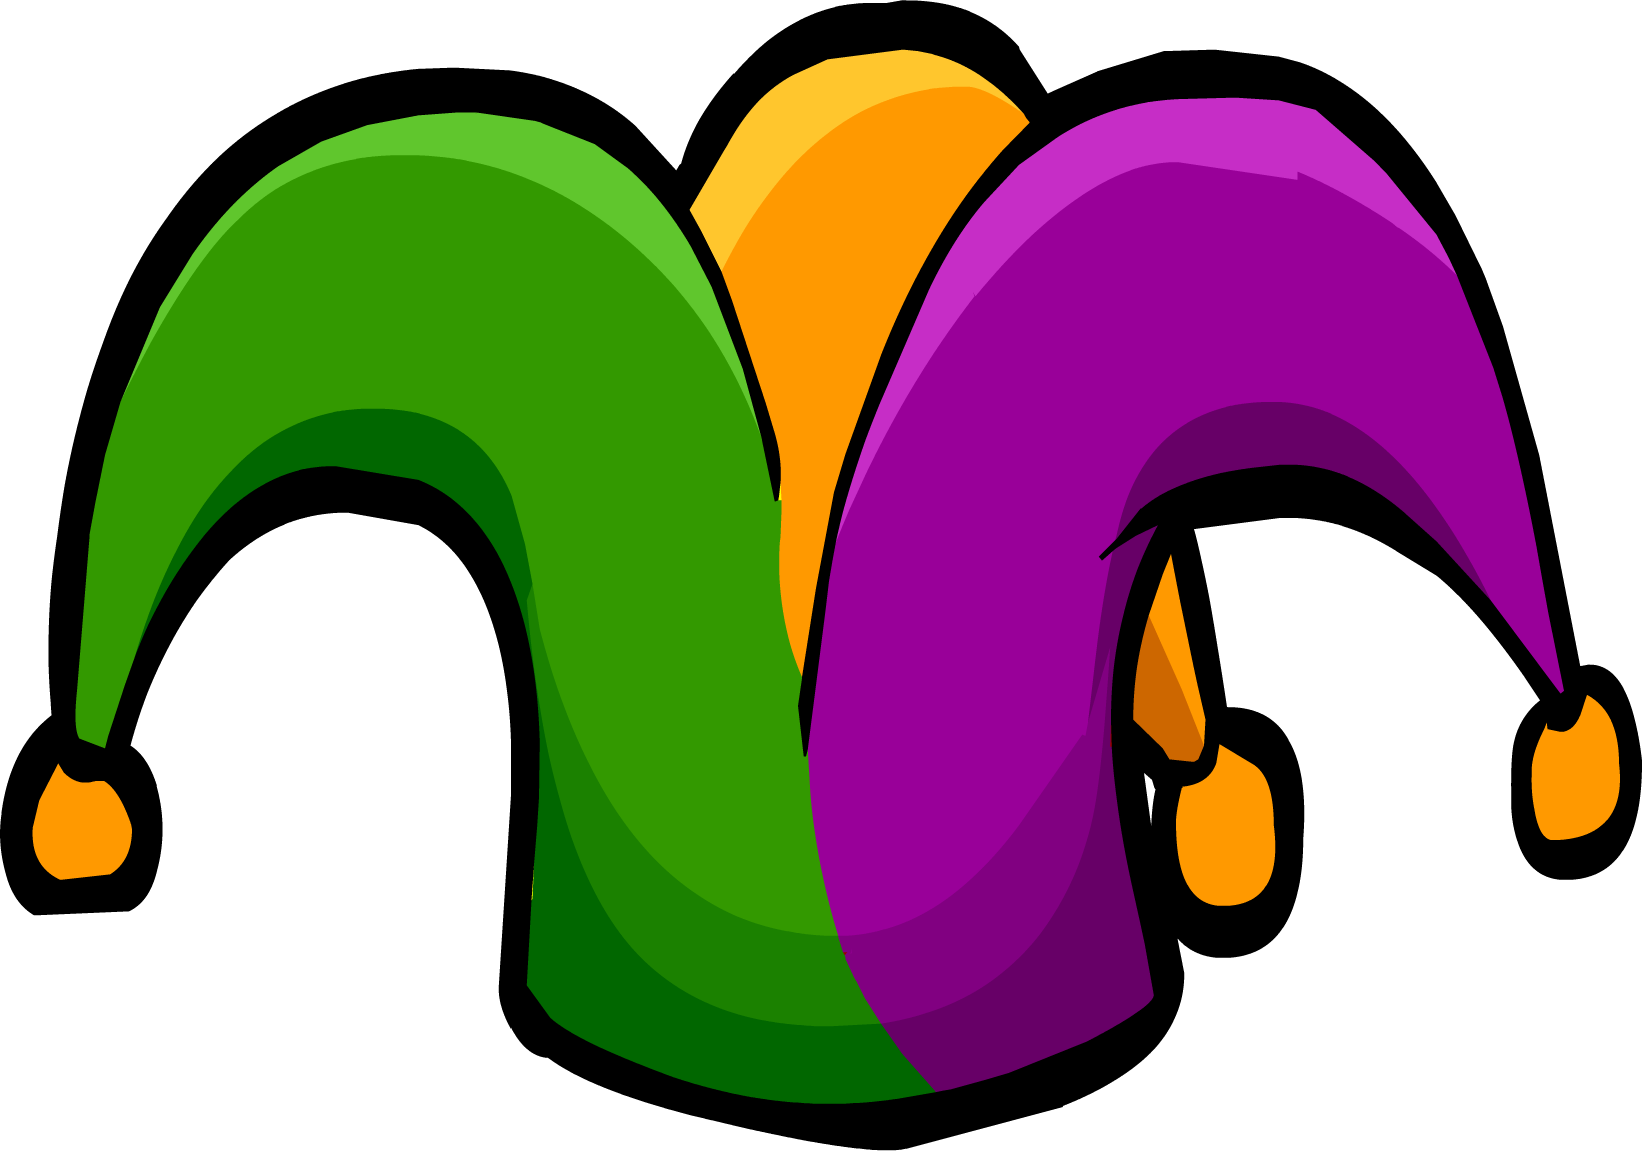 February clipart hat. Image court jester icon